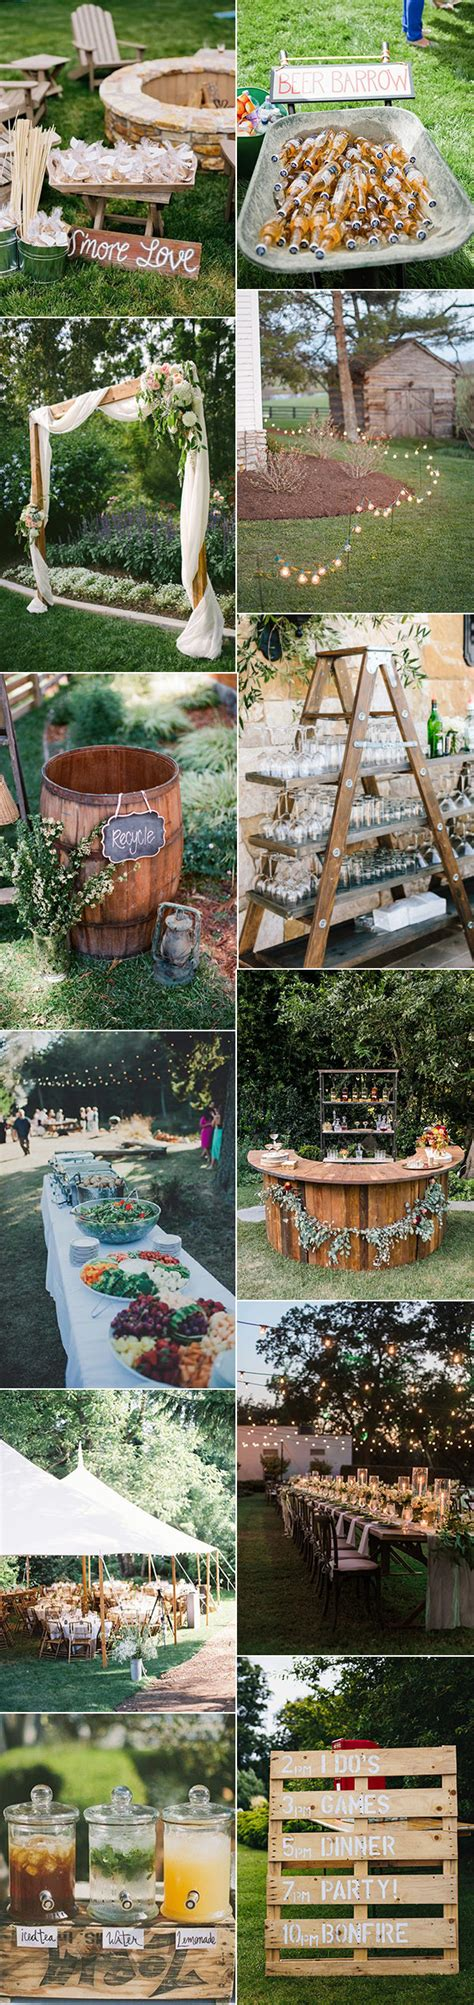 Rustic Backyard Wedding Ideas 20 Great Backyard Wedding Ideas That Inspire Oh Best Day